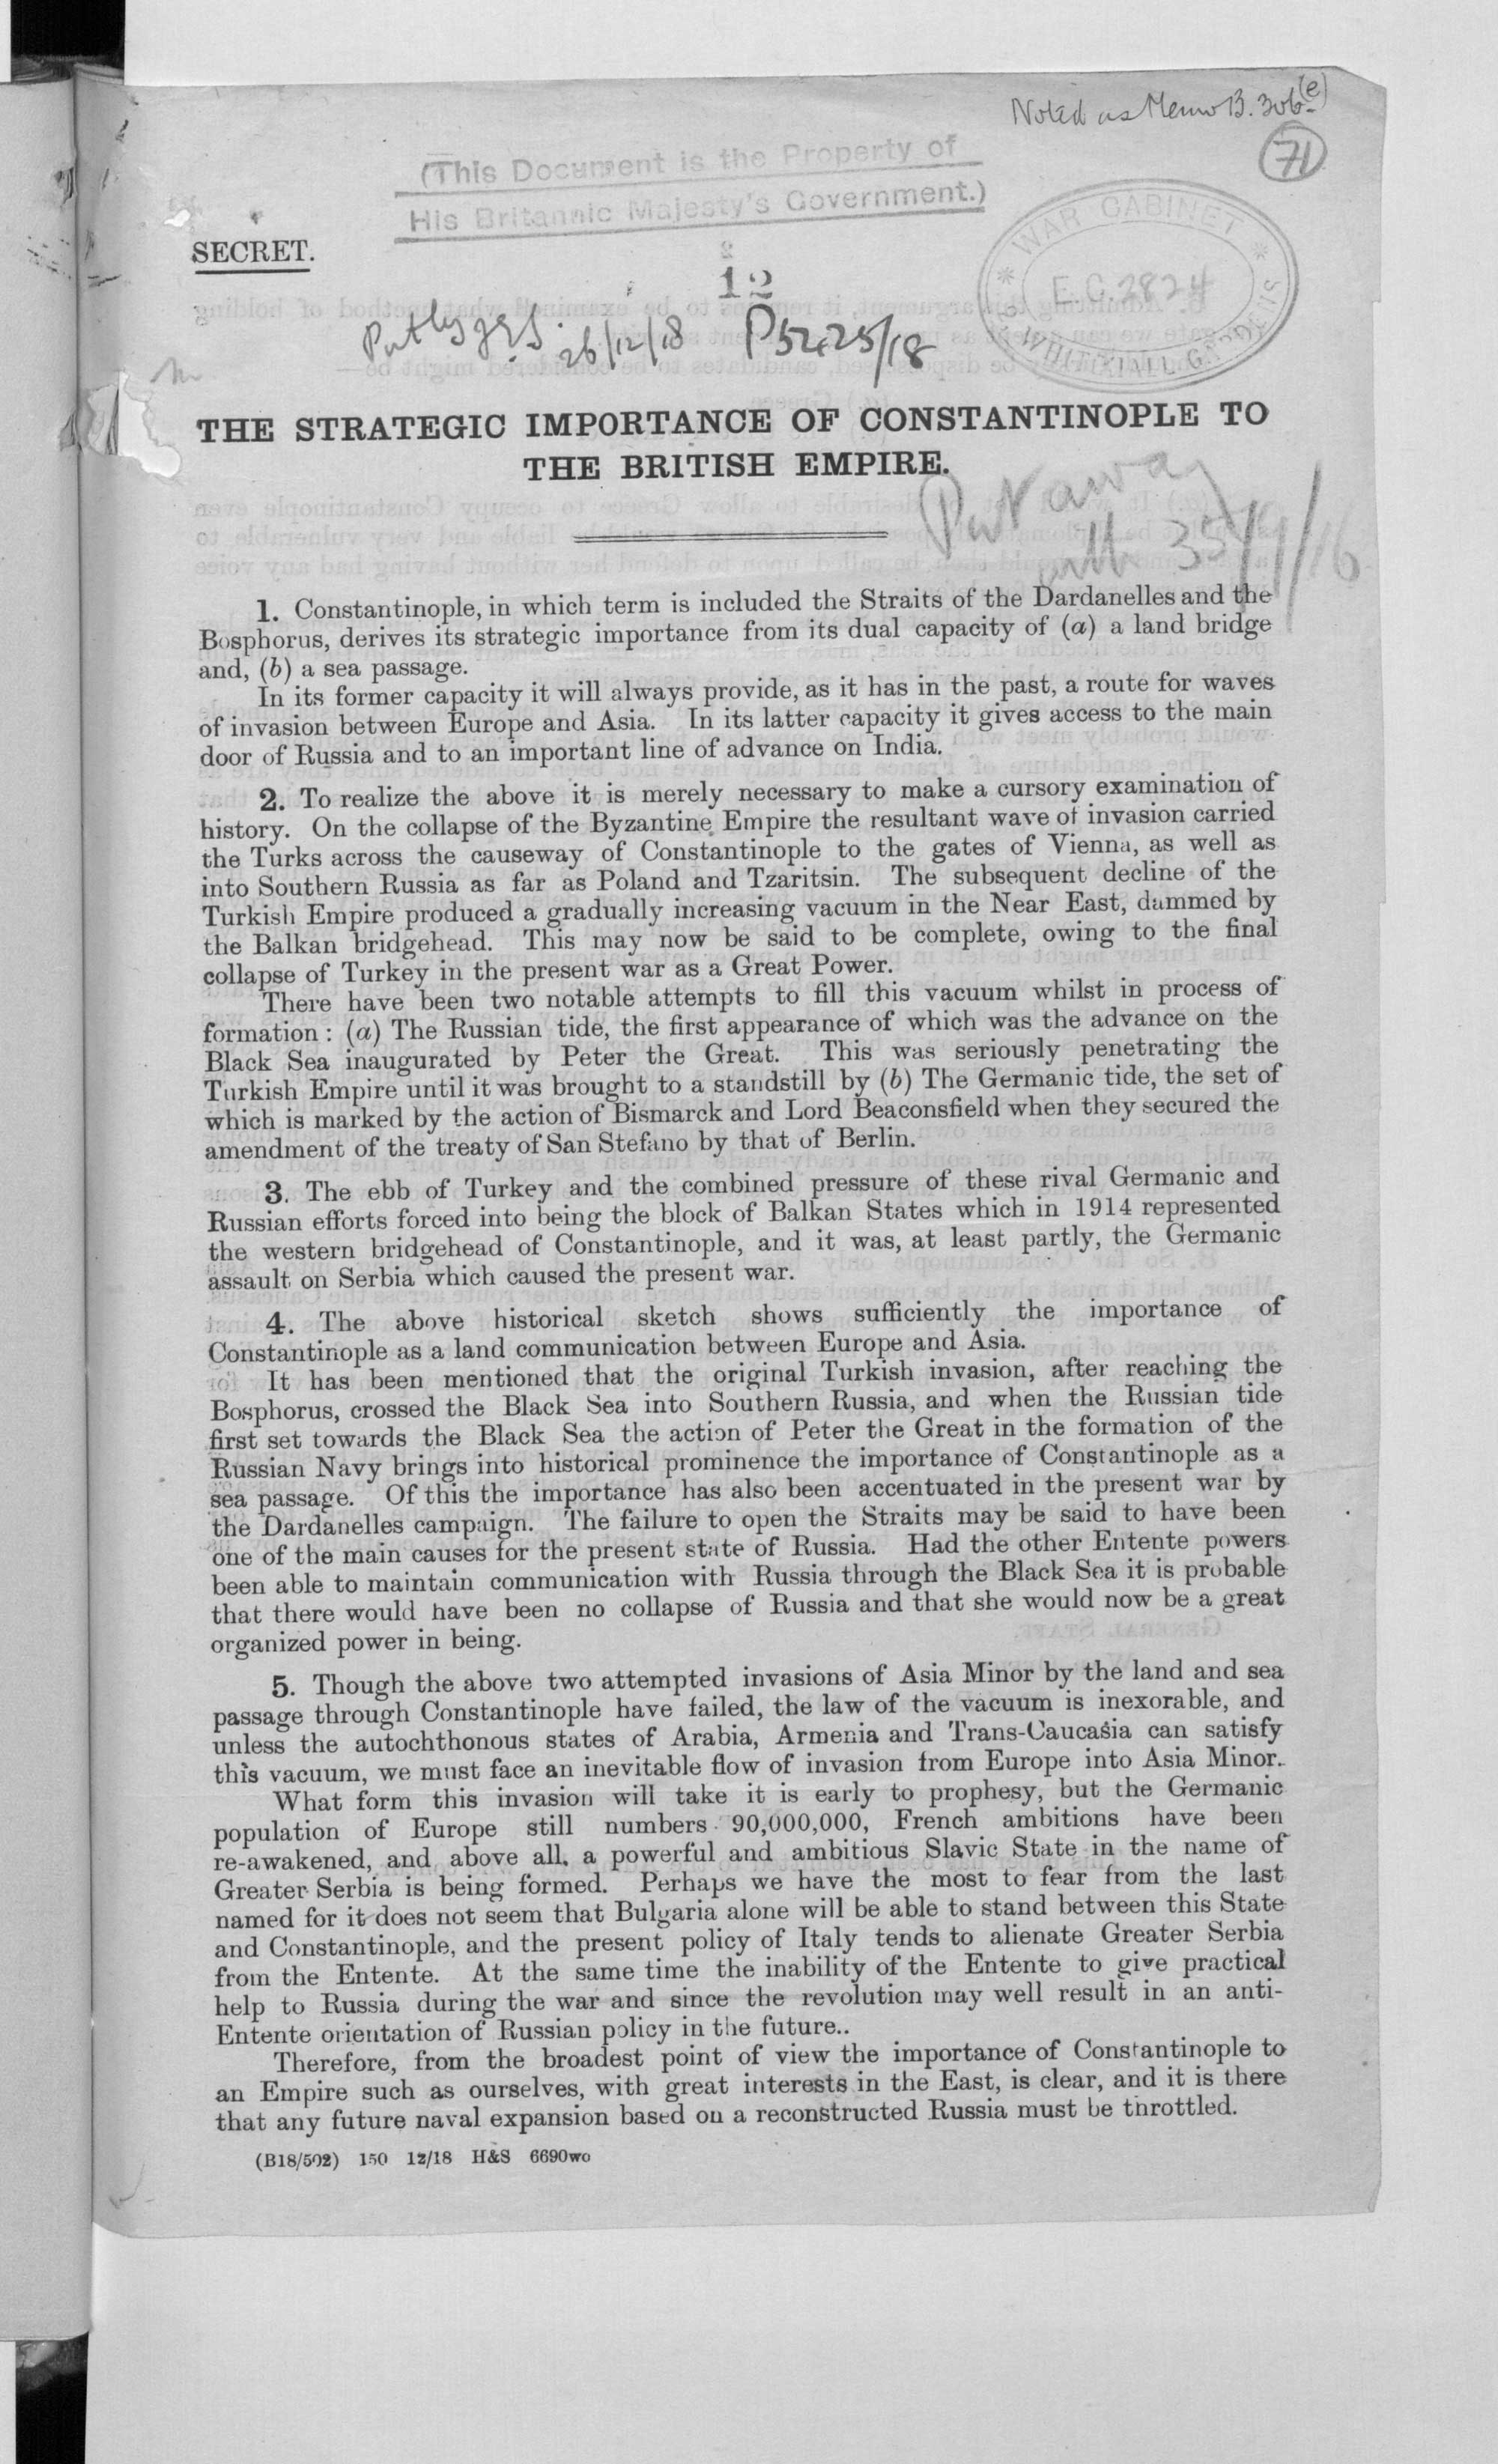 The strategic importance of Constantinople to the British Empire  General Staff, War Office, 22 December 1918 IOR/L/PS/10/623 f.71